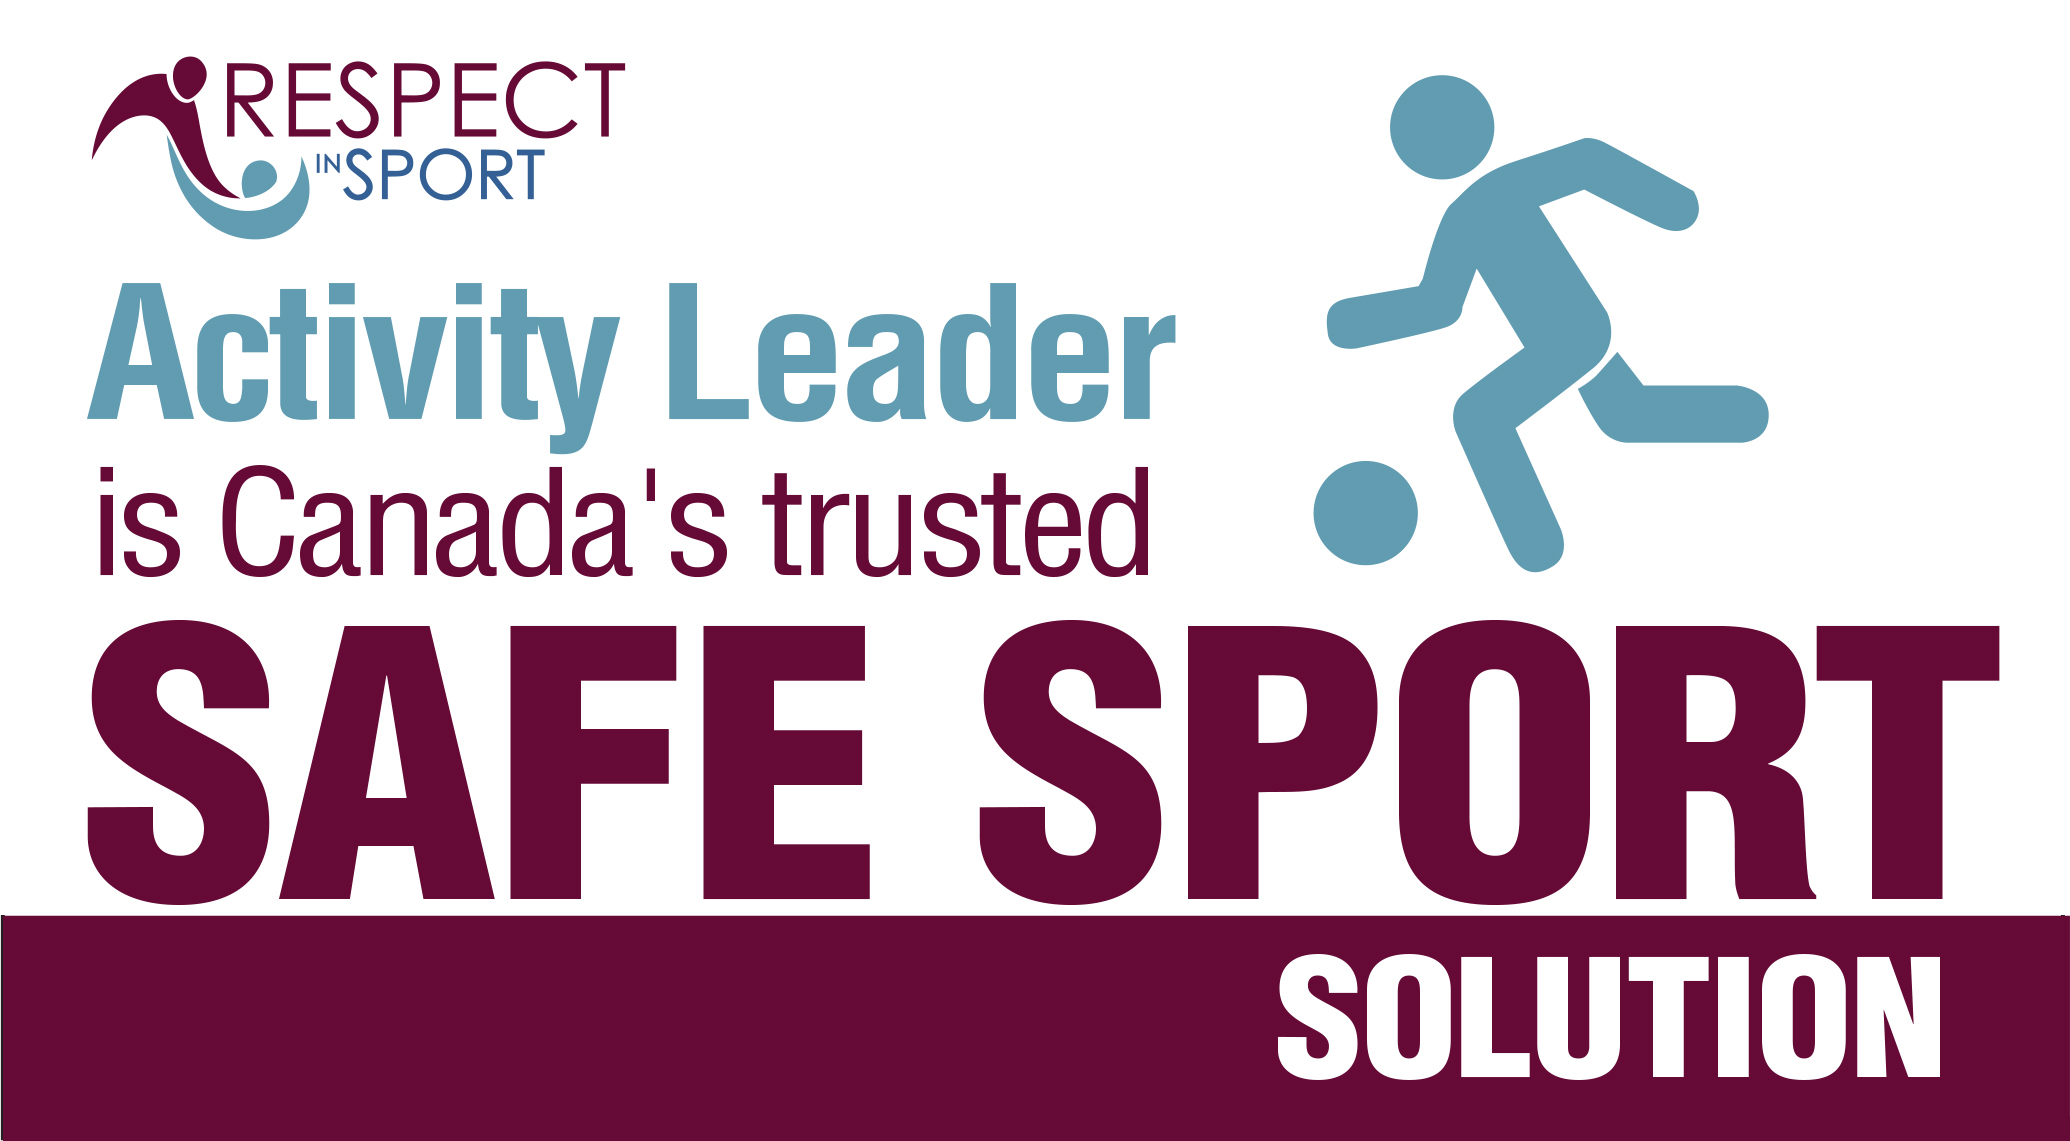 Respect Group: Canada's Leading Safe Sport Solution, #safesport, safe sport, canada sport, coach training, safe sport training, abuse prevention training canada, coach training abuse, safer sport, safe activities, prevent abuse, athletesCAN